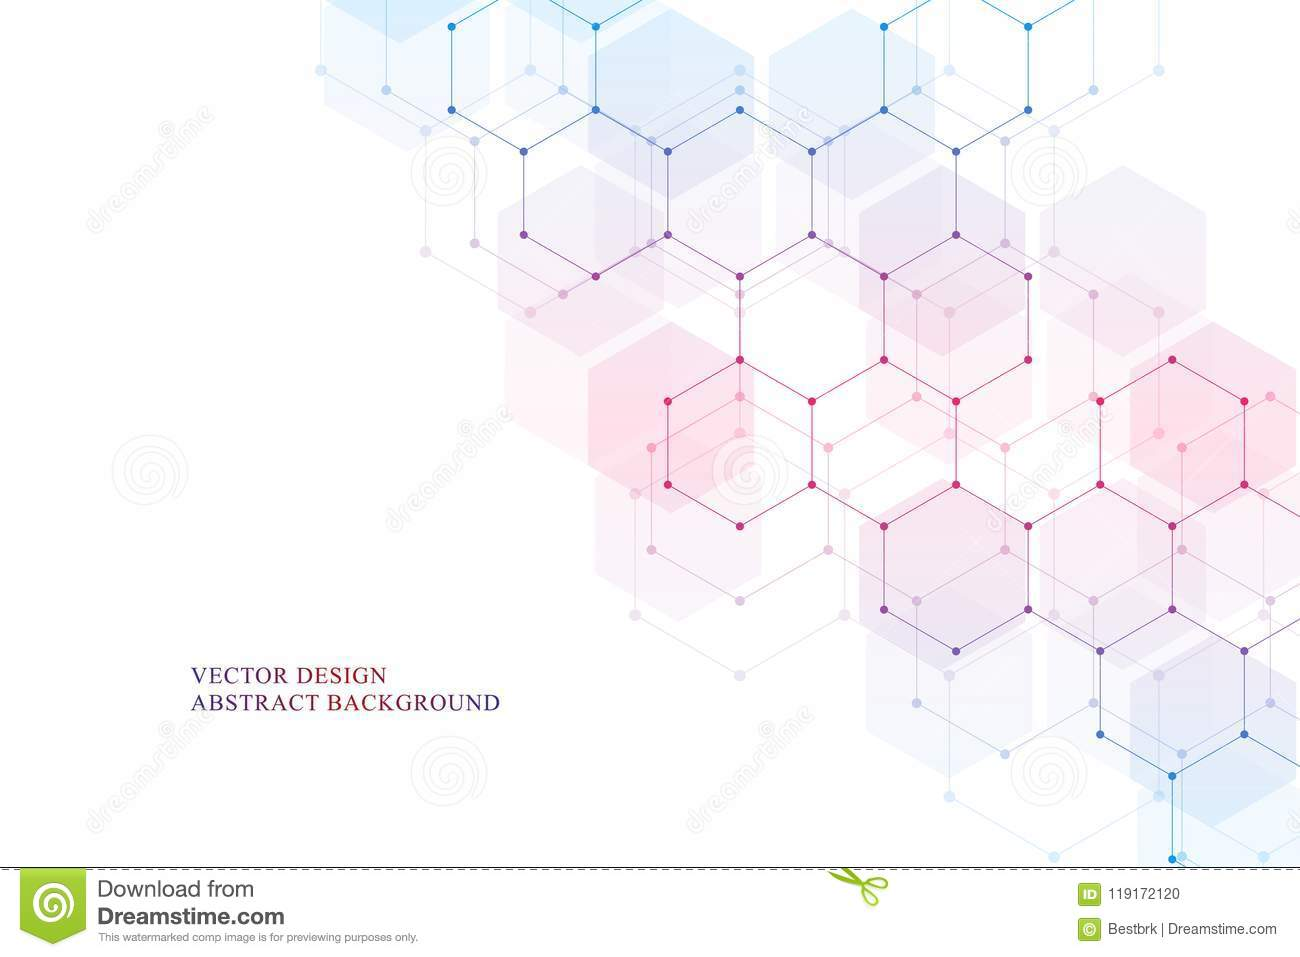 Hexagonal molecular structure for medical, science and digital technology design. Abstract geometric vector background.